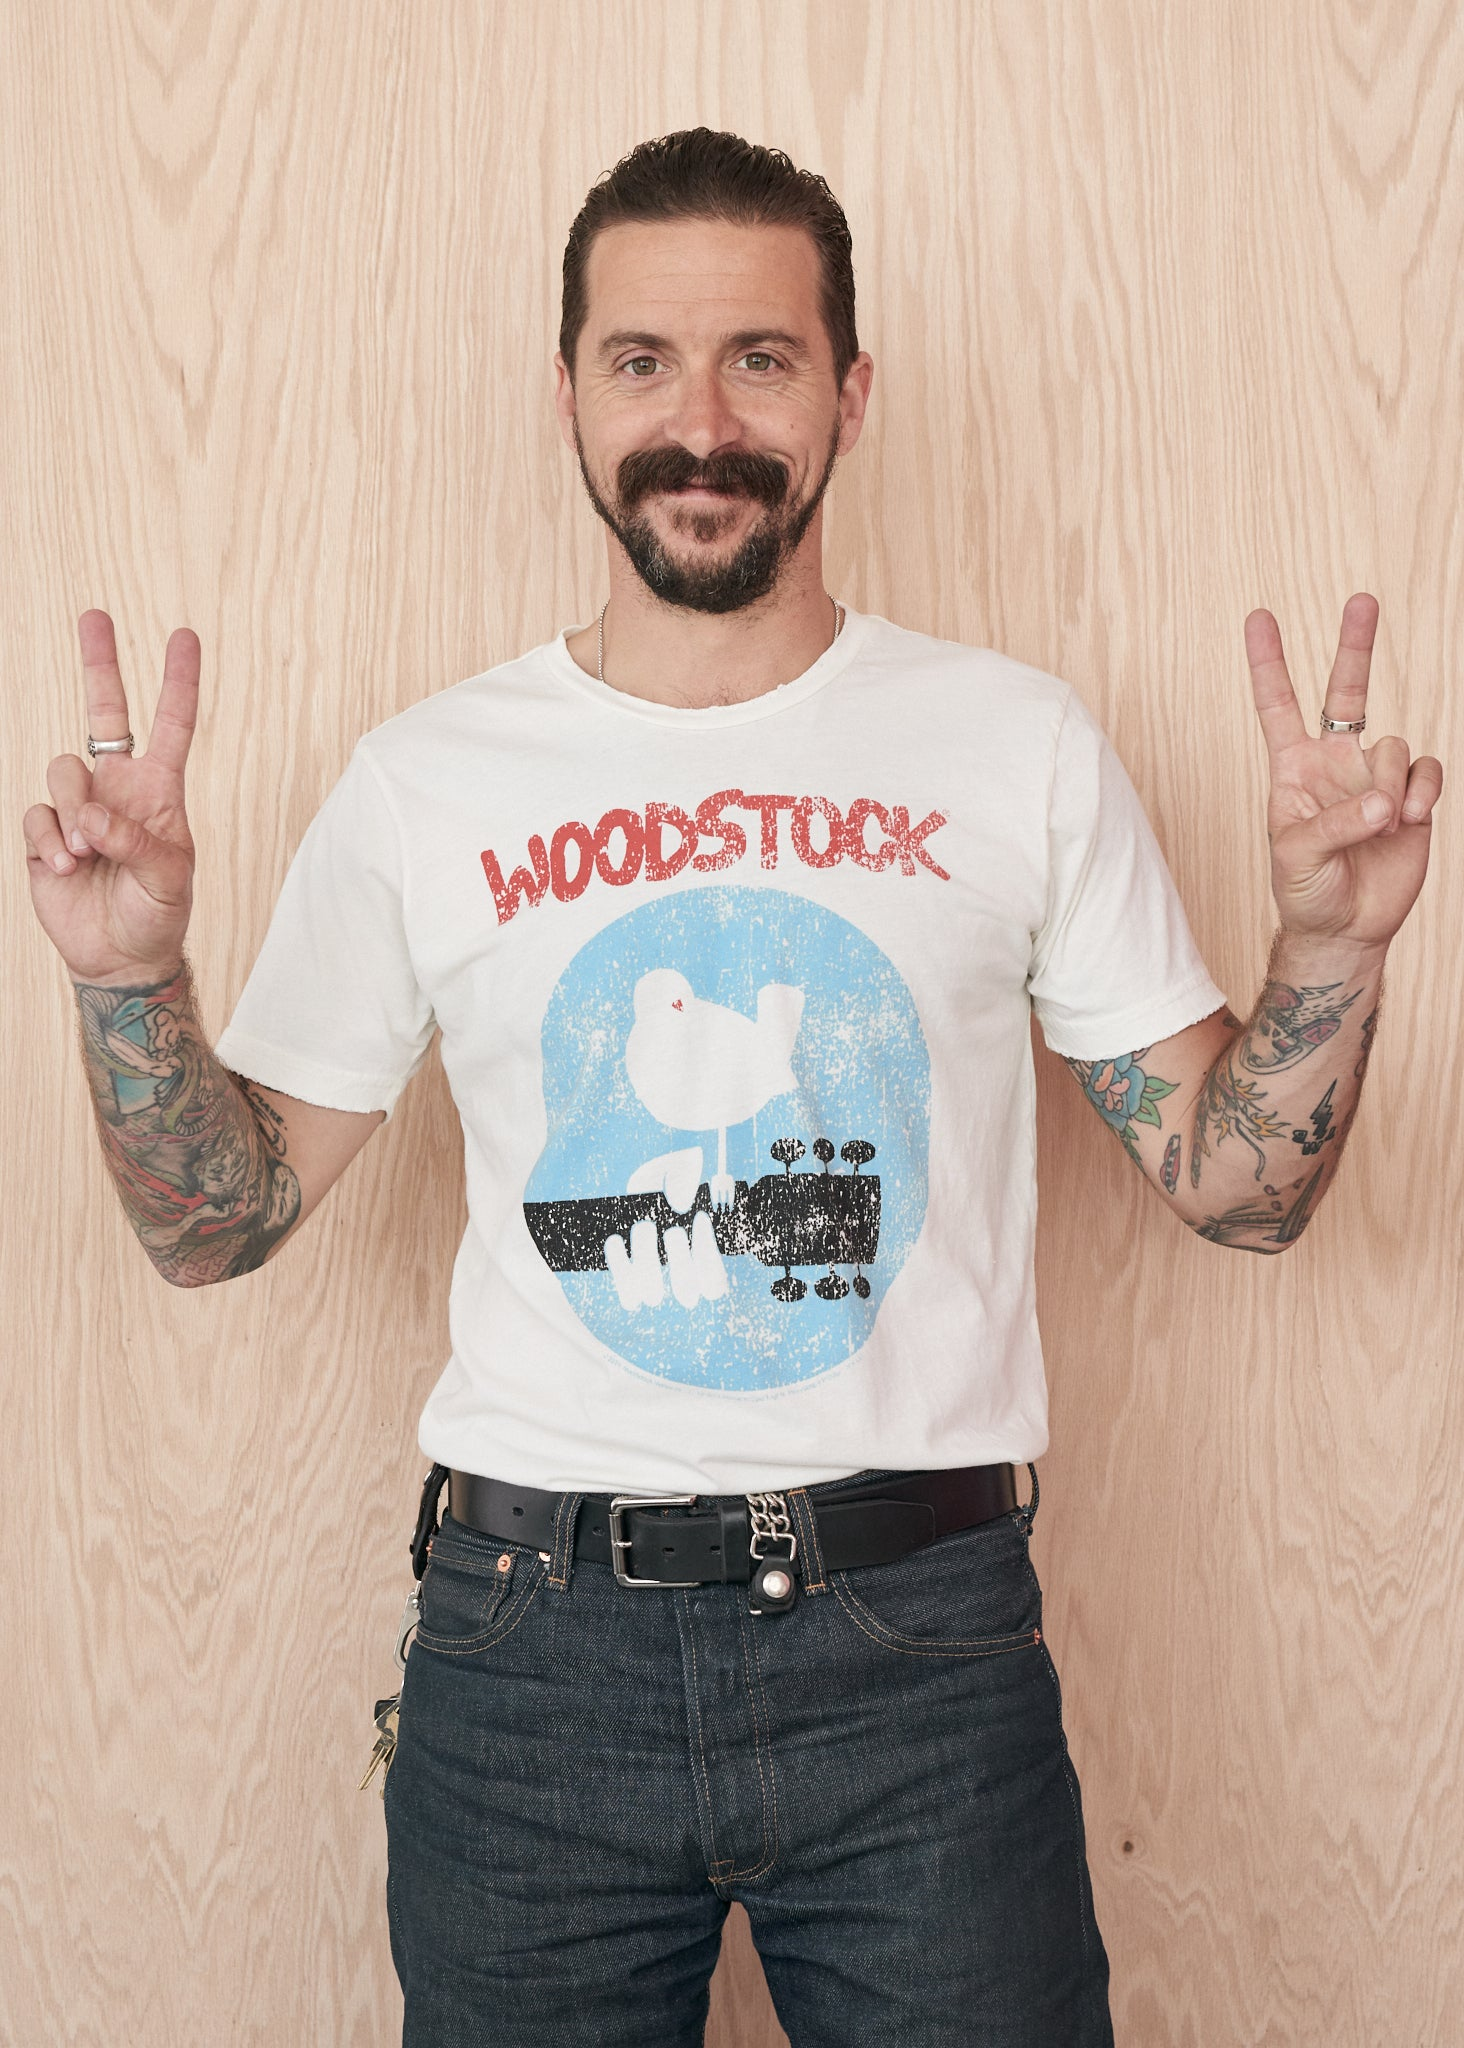 Woodstock Men's Crewneck Tee Shirt